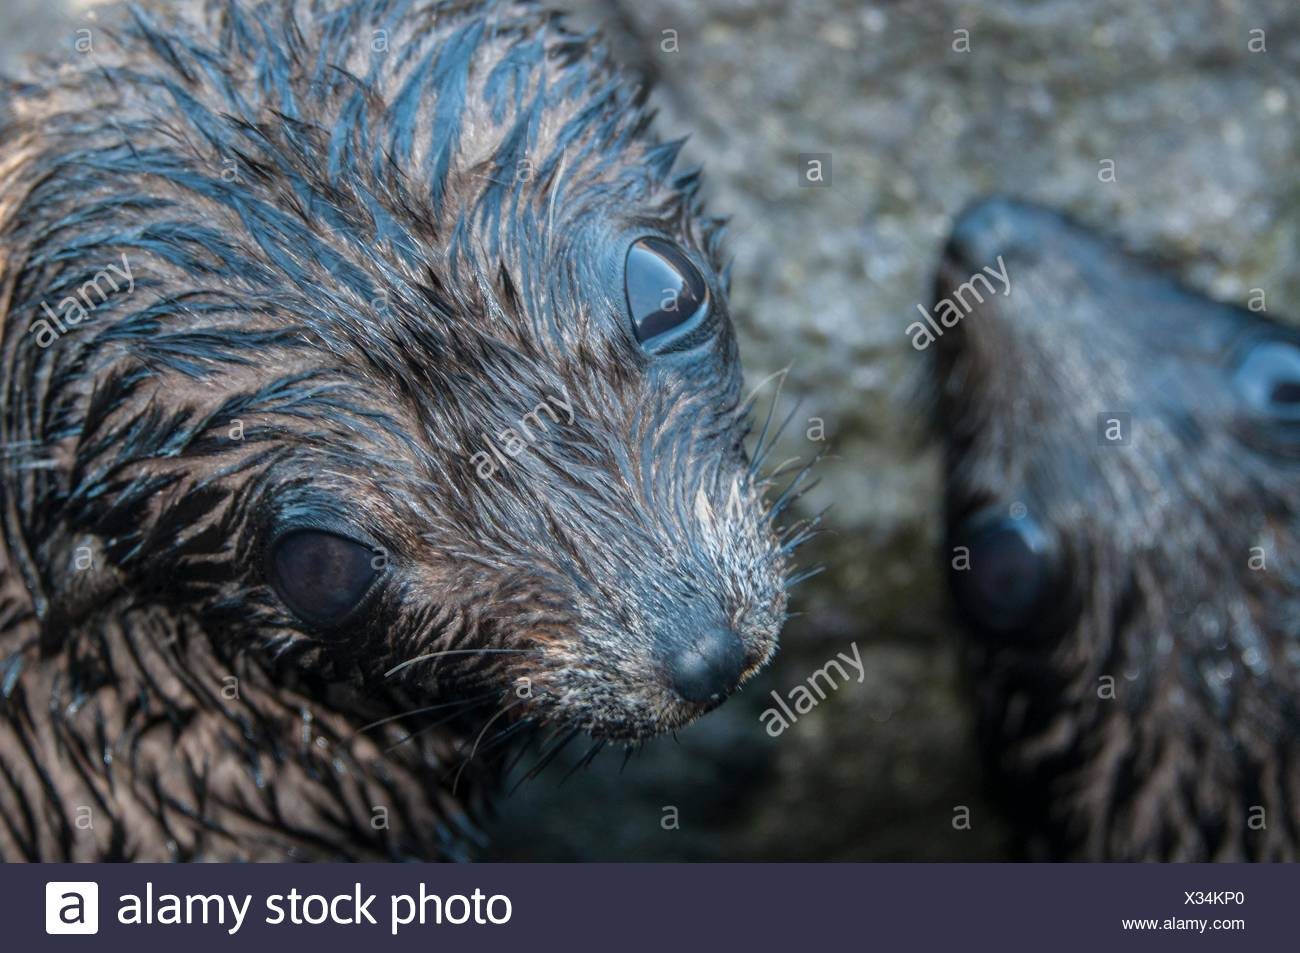 Overhead close up of Guadalupe fur seal pups ;looking up at camera, Guadalupe Island, Baja California, Mexico - Stock Image